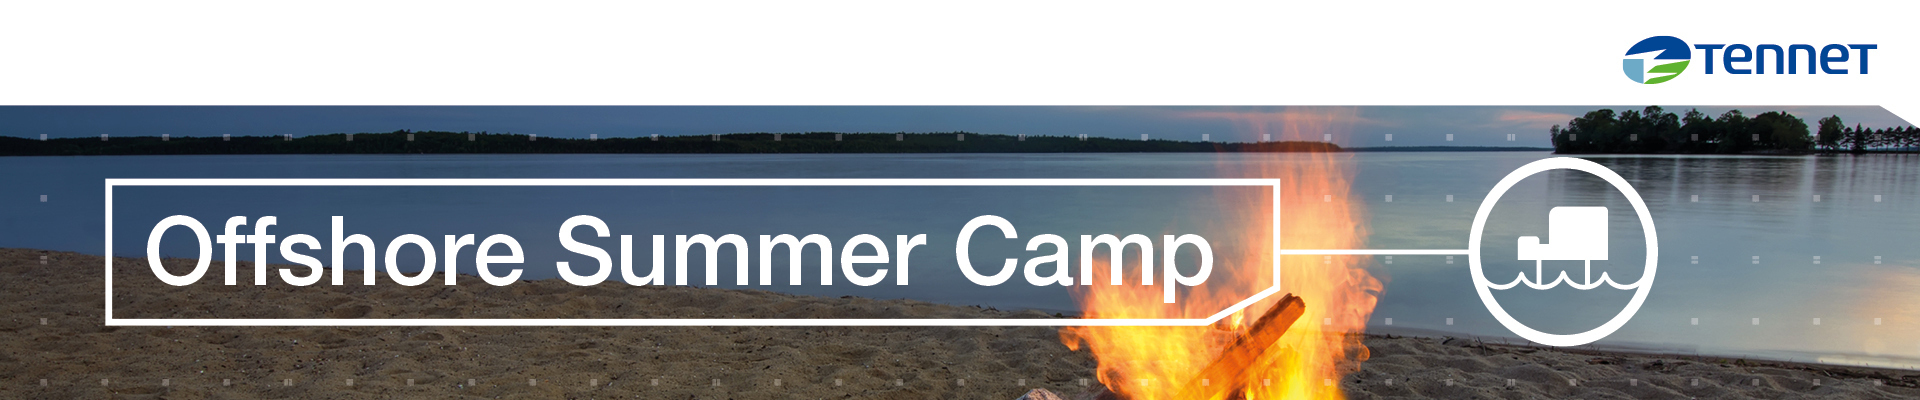 Offshore Summer Camp